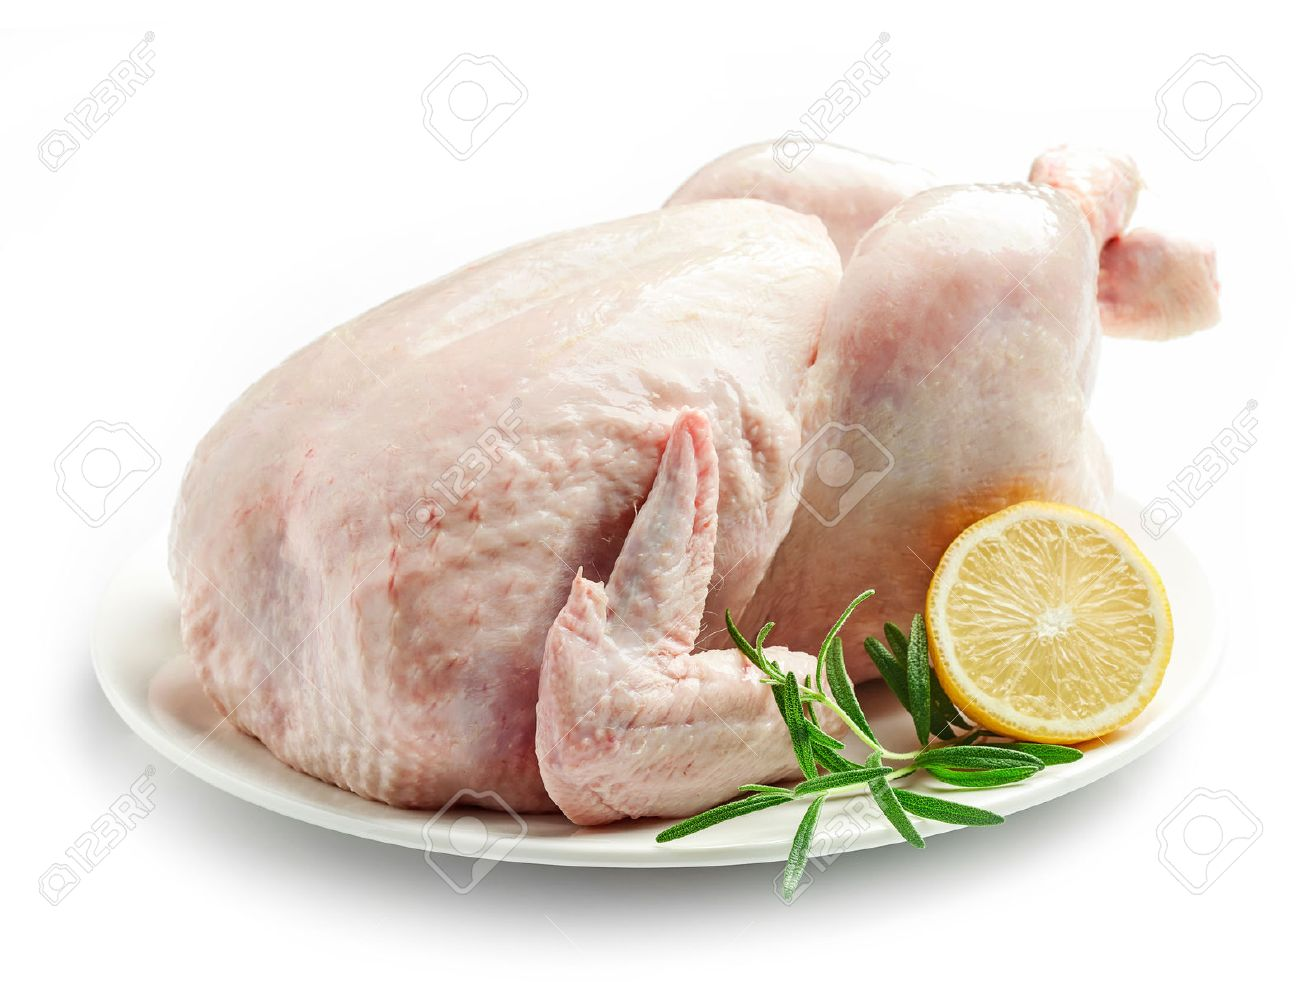 whole raw chicken on plate isolated on white background stock photo